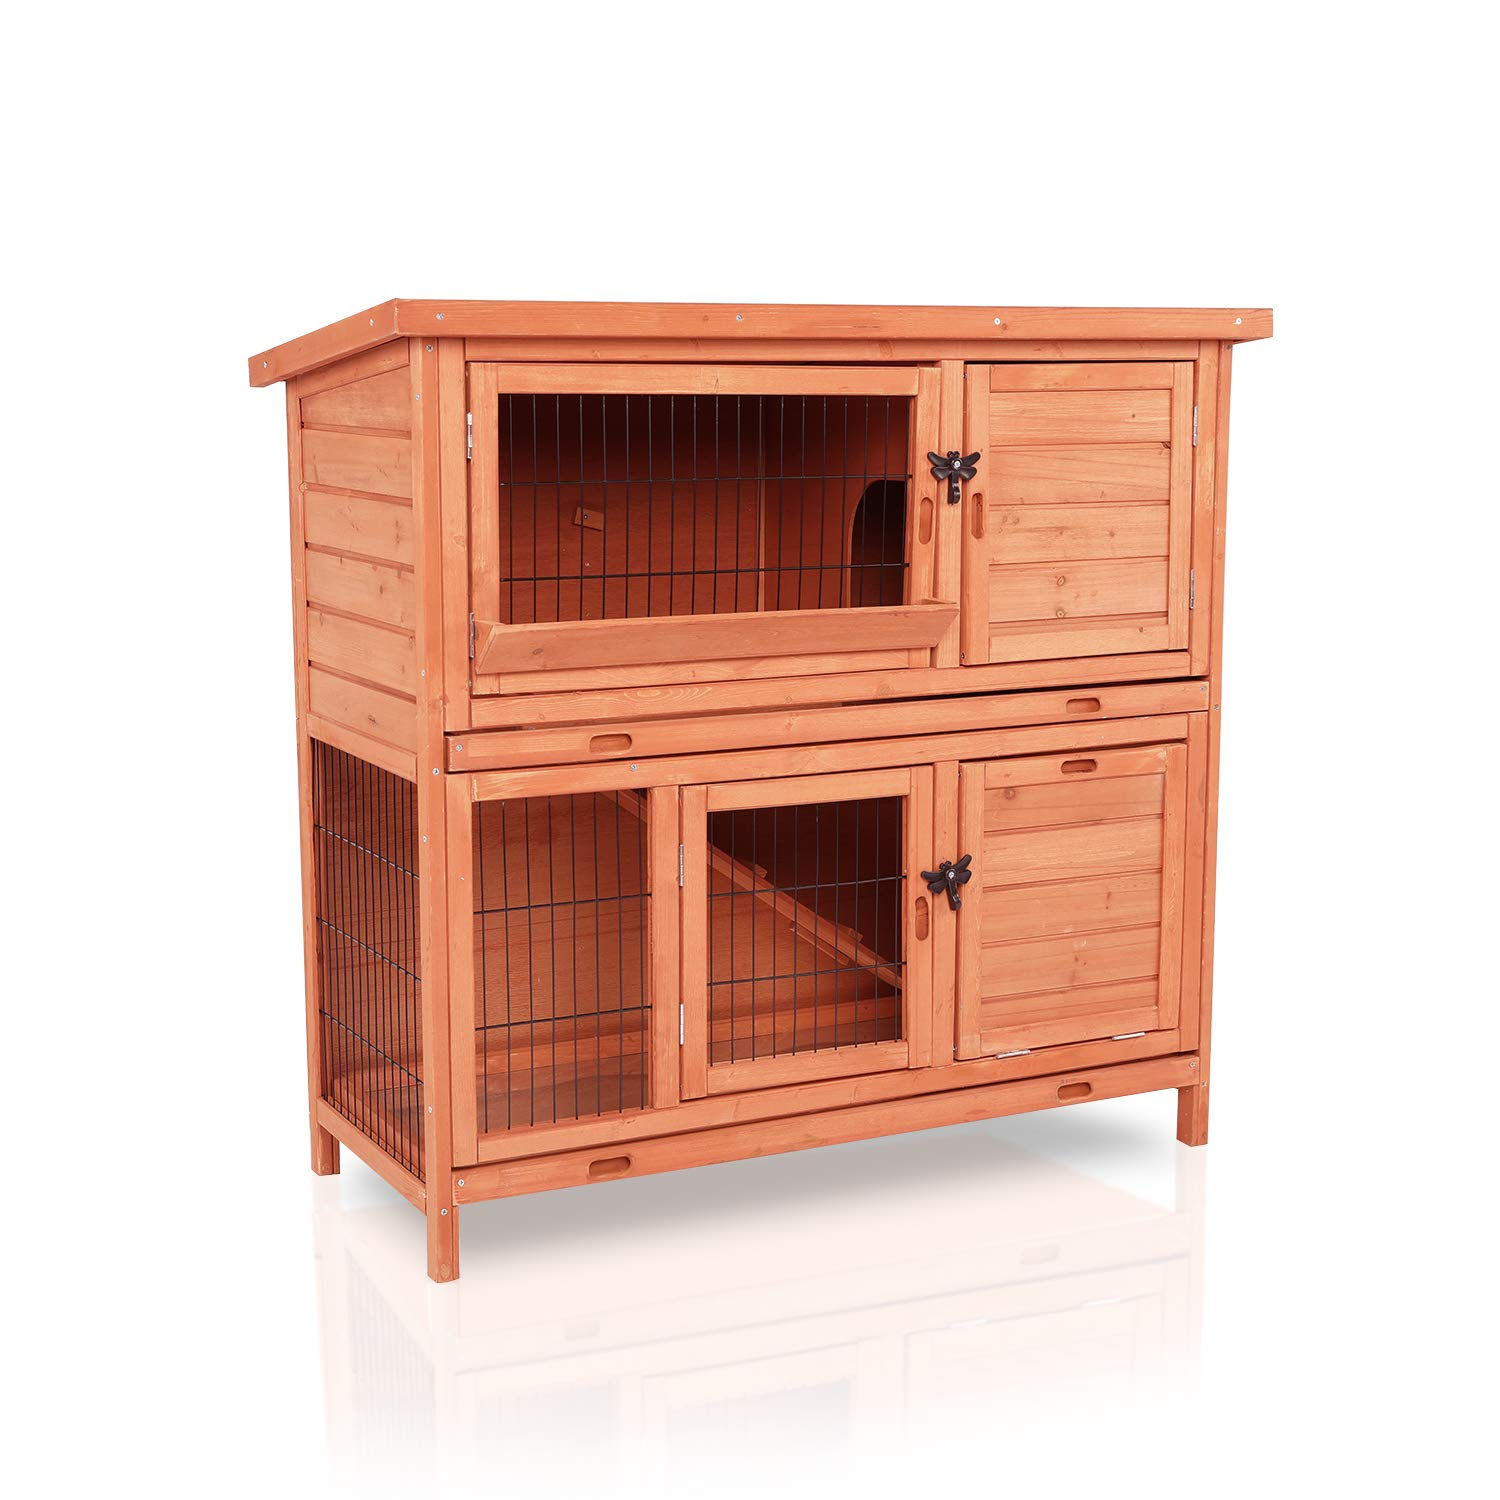 "LAZY BUDDY Rabbit Hutch, 40"" Wooden Rabbit Cage Indoor and Outdoor Use with Waterproof Roof for Bunny, Rabbit, Chicken and Other Pets"